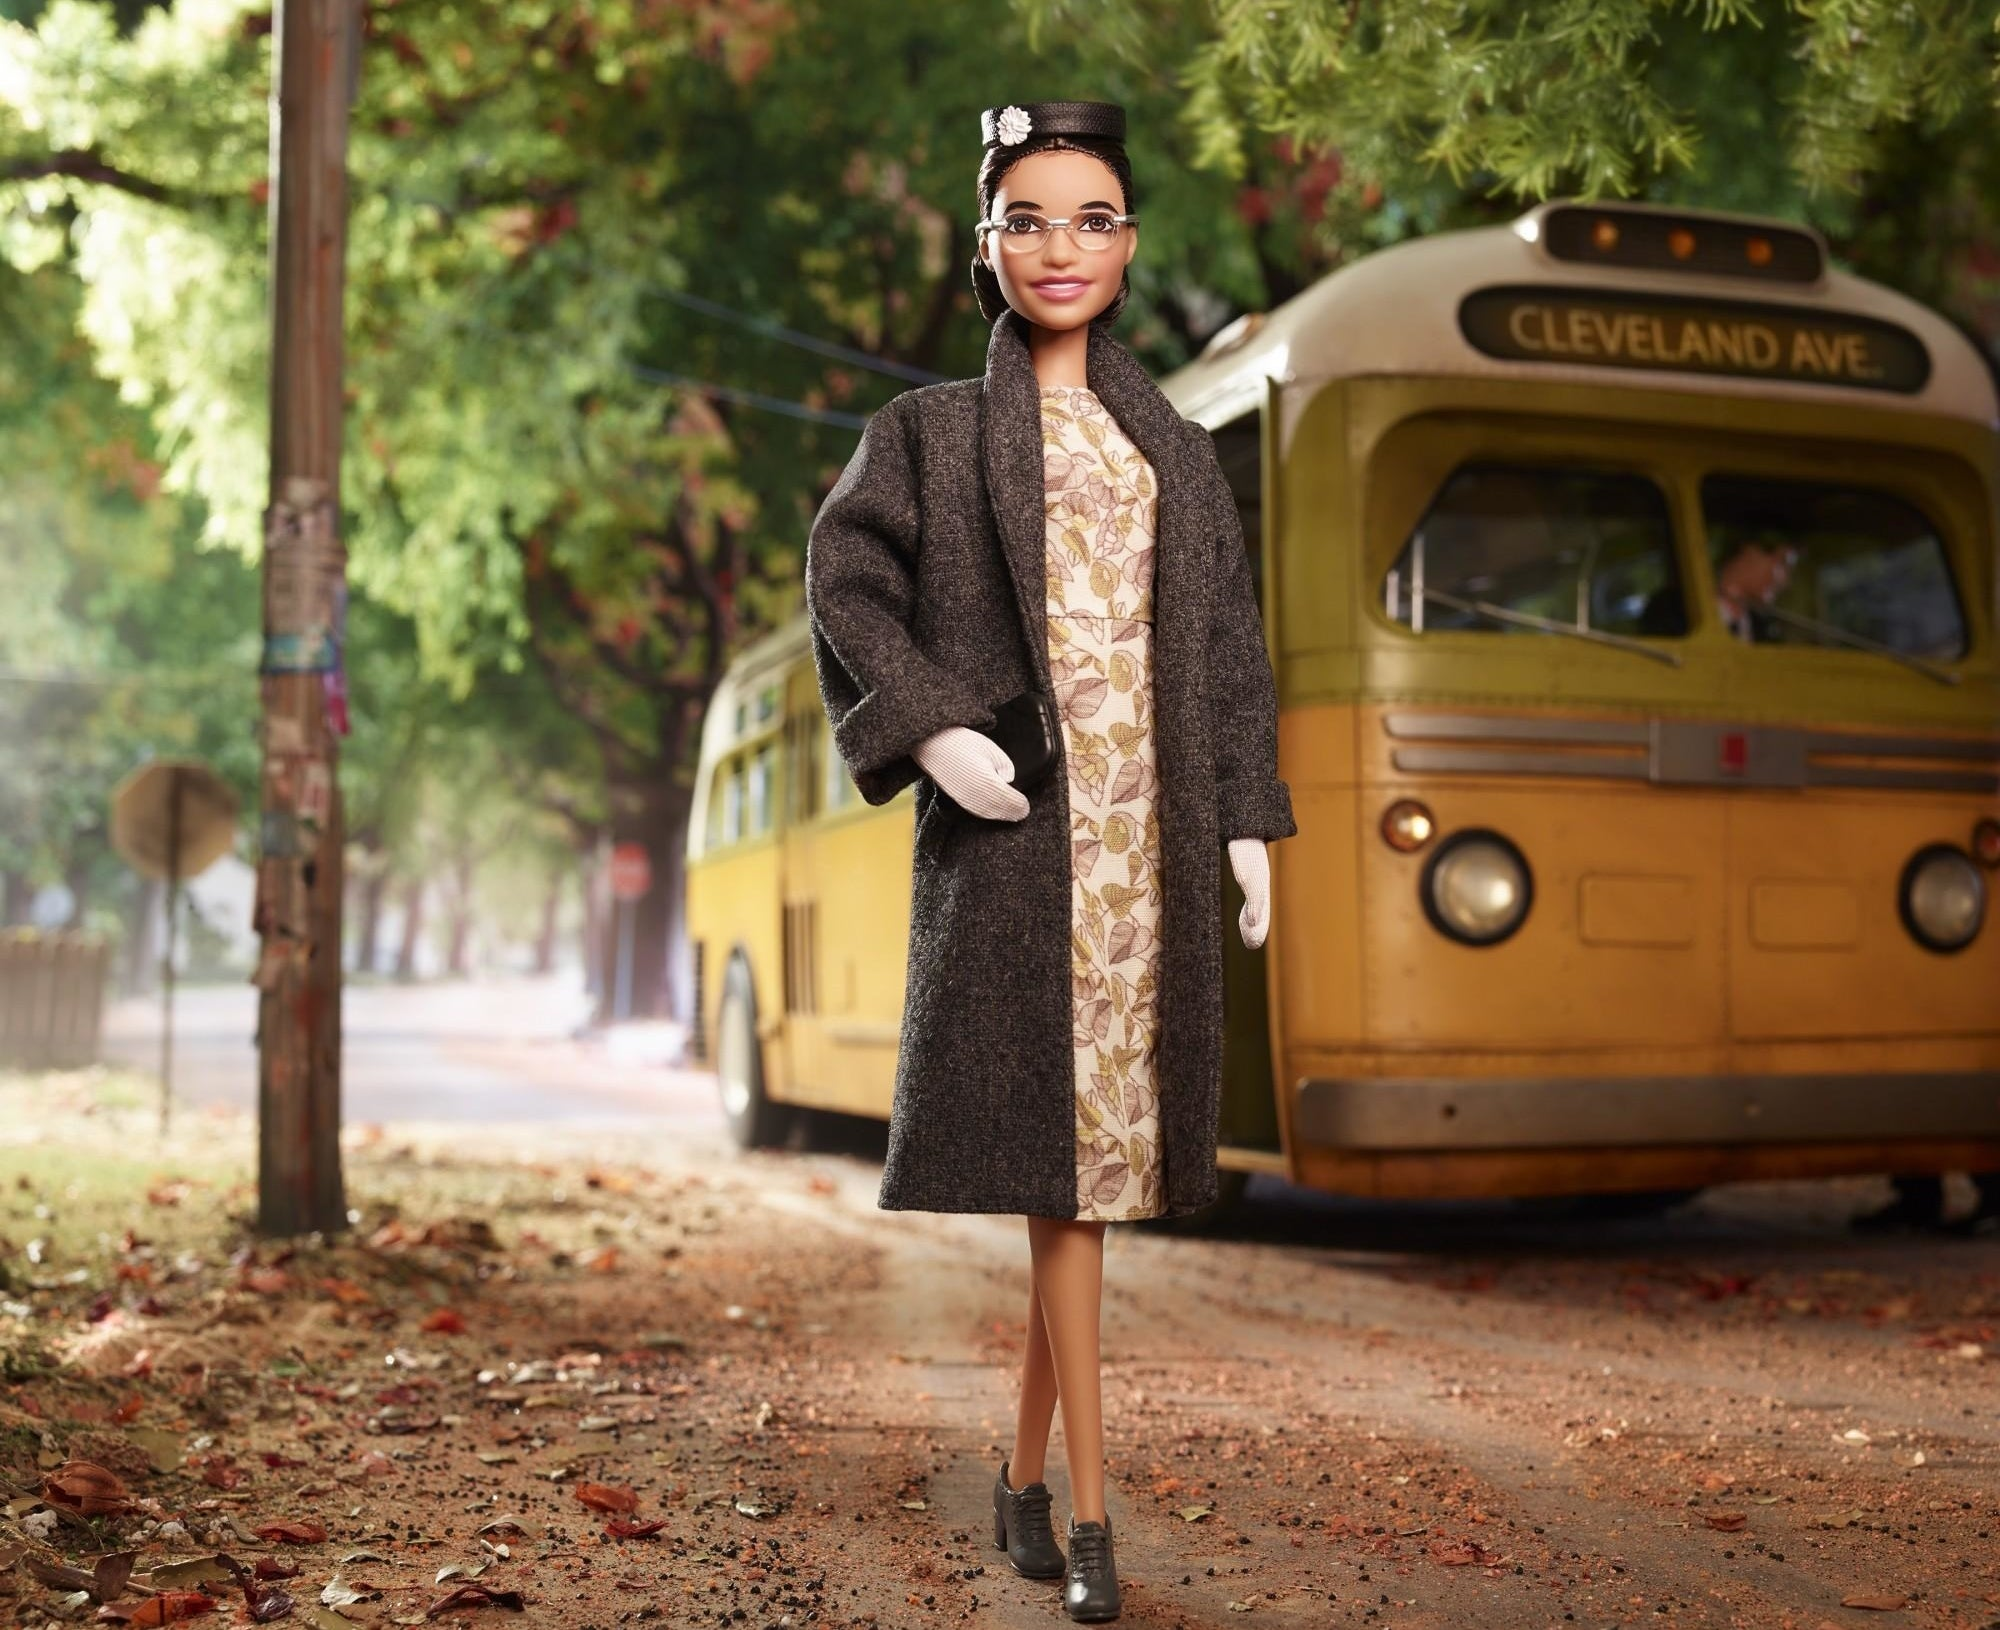 rosa parks barbie doll with a bus in the background